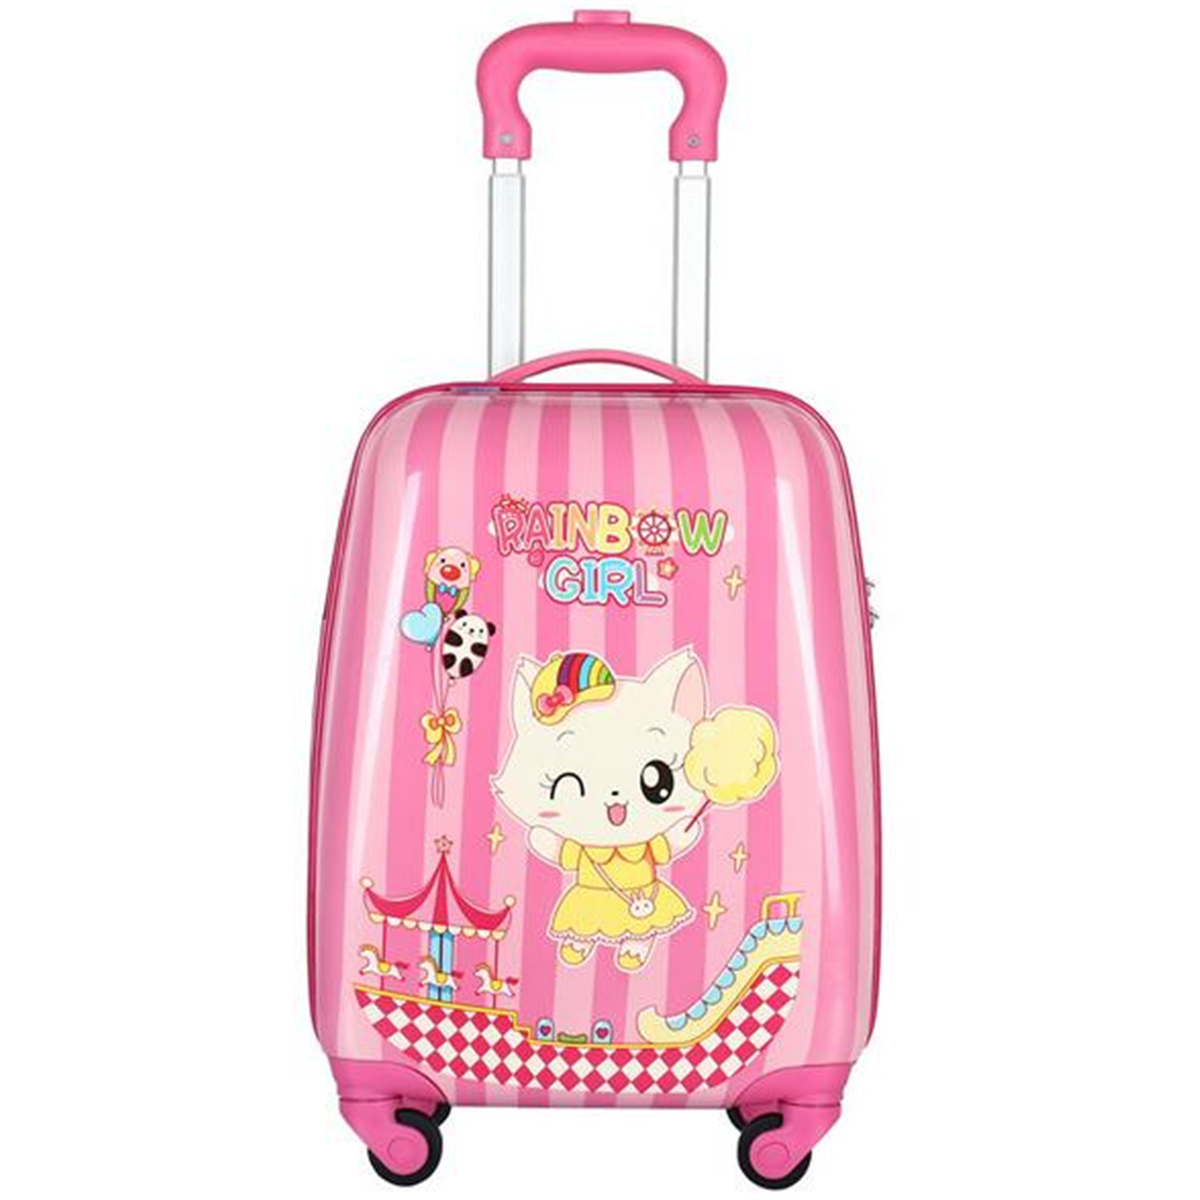 18inch Children Luggage Cartoon Travel Suitcase Camping Aluminium Trolley Bag Rolling Luggage